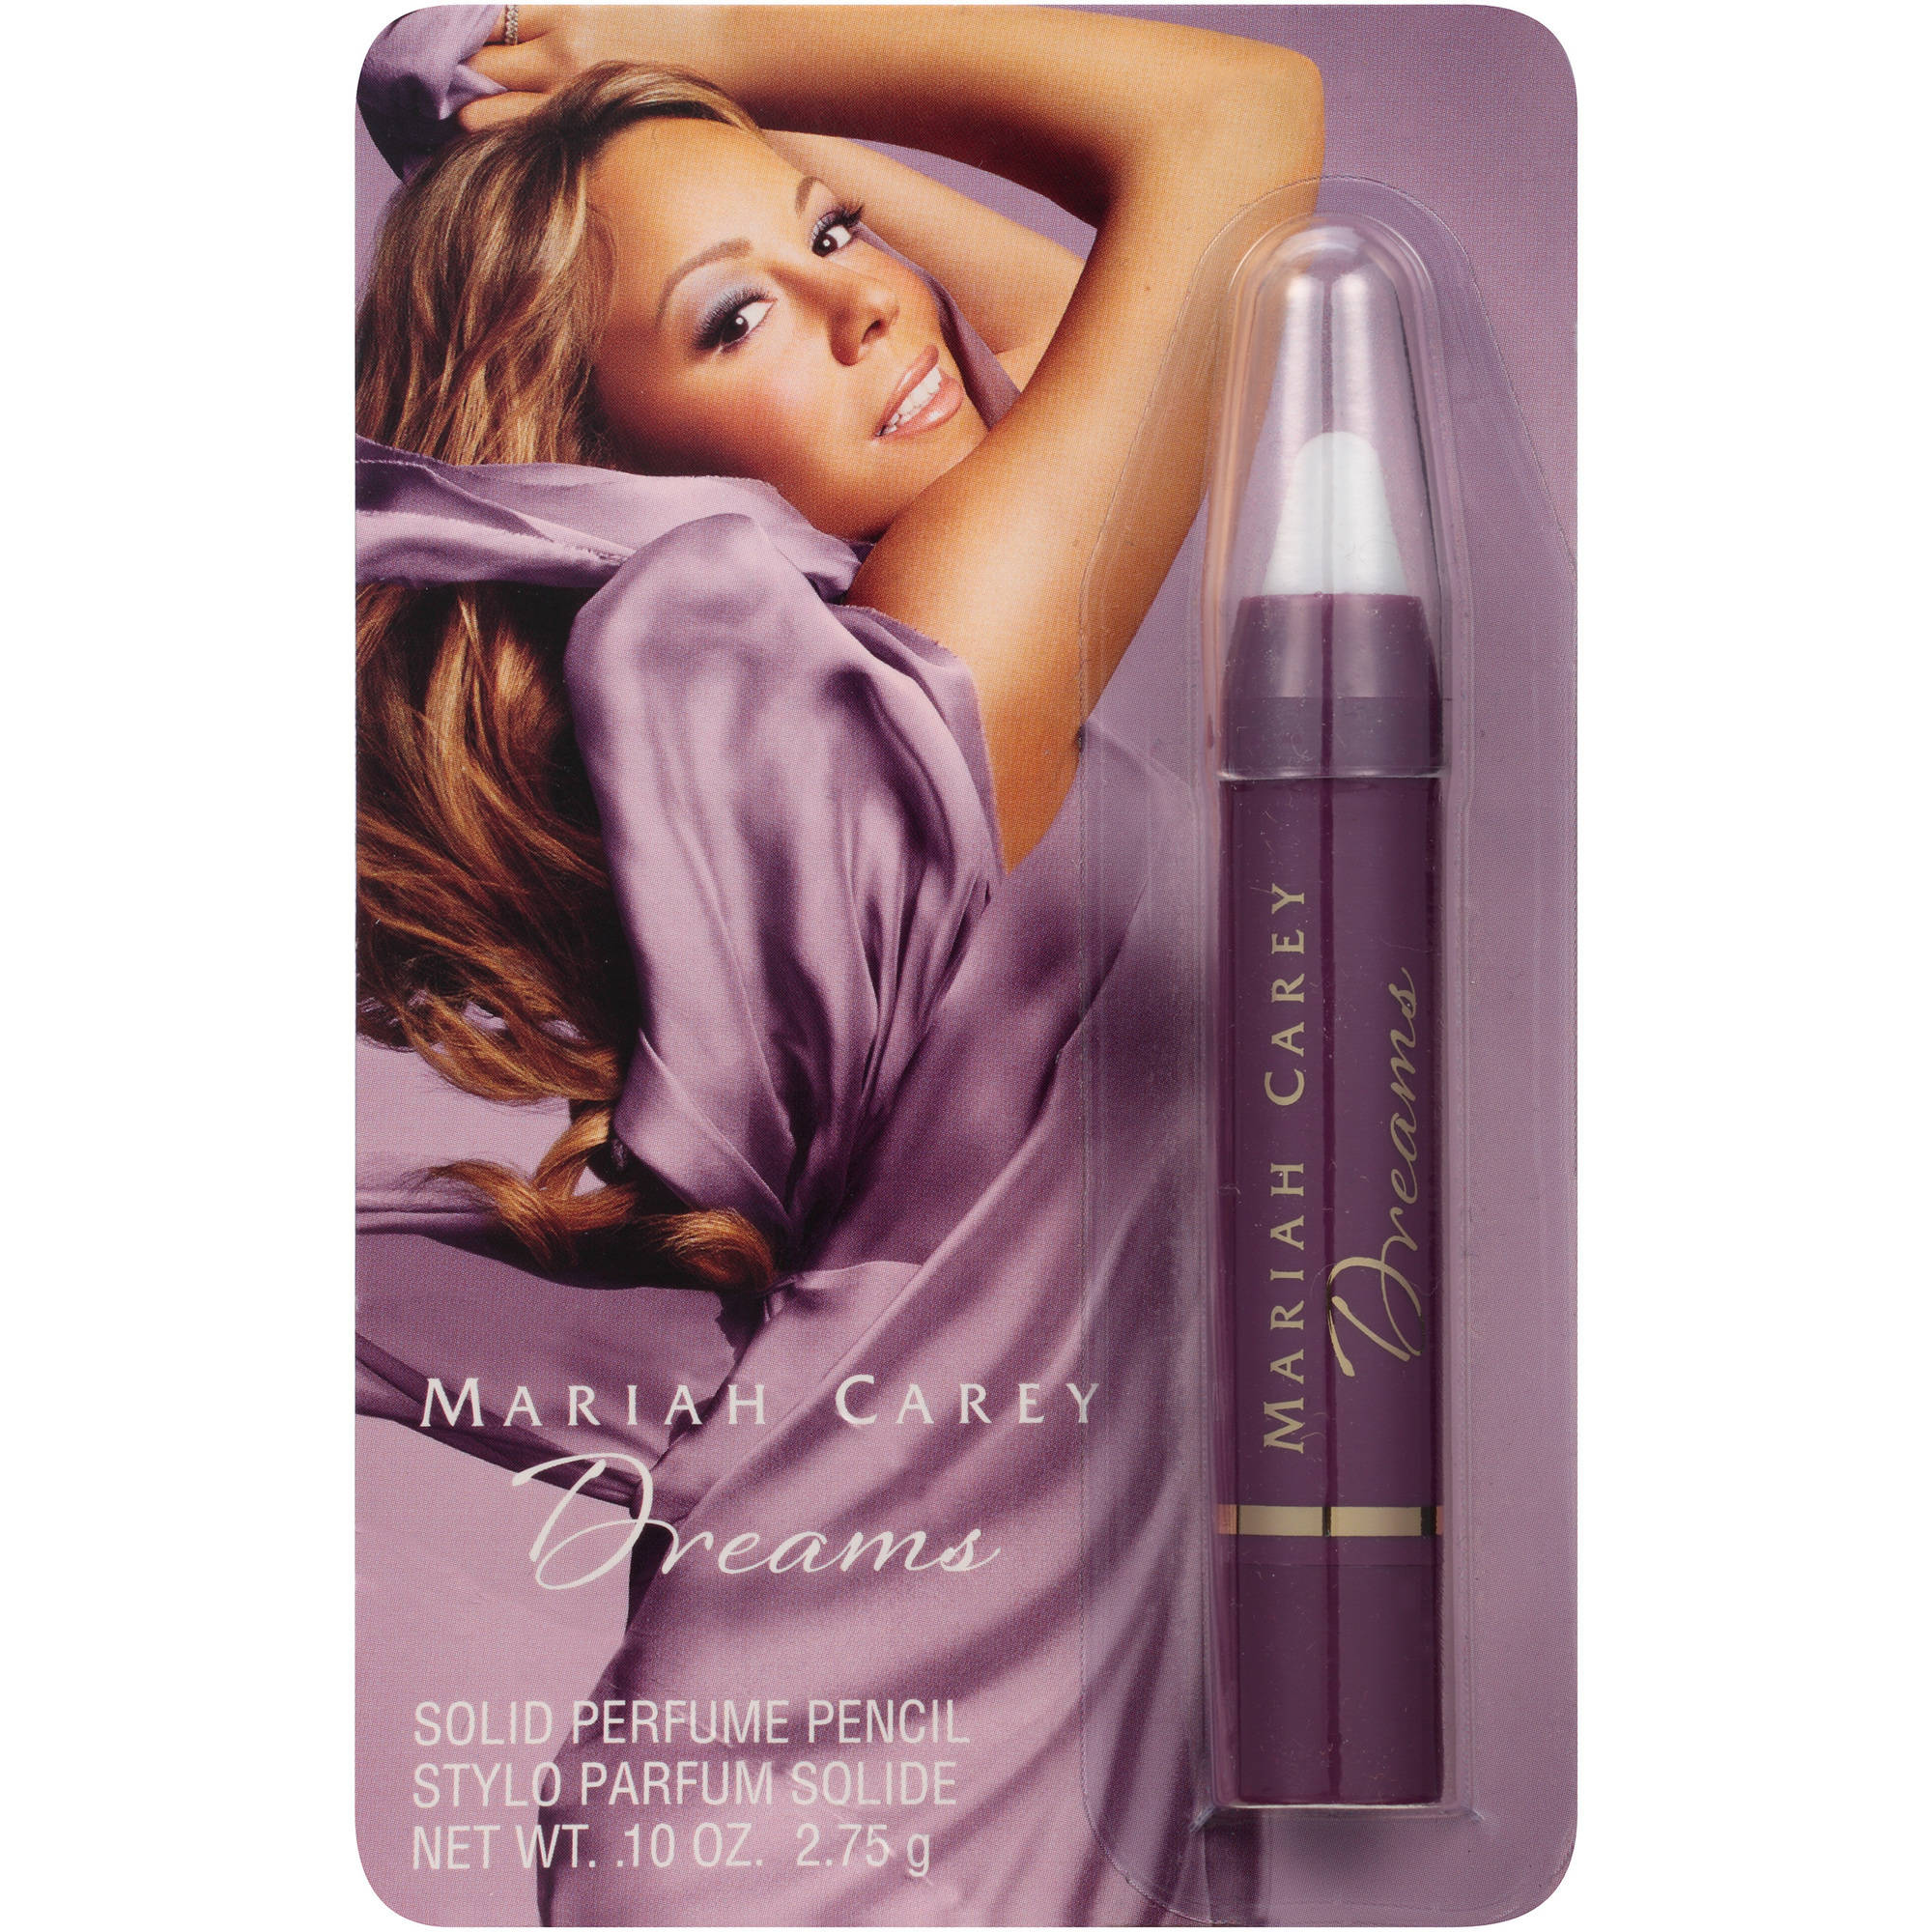 Mariah Carey Dreams Solid Perfume Pencil, .10 oz